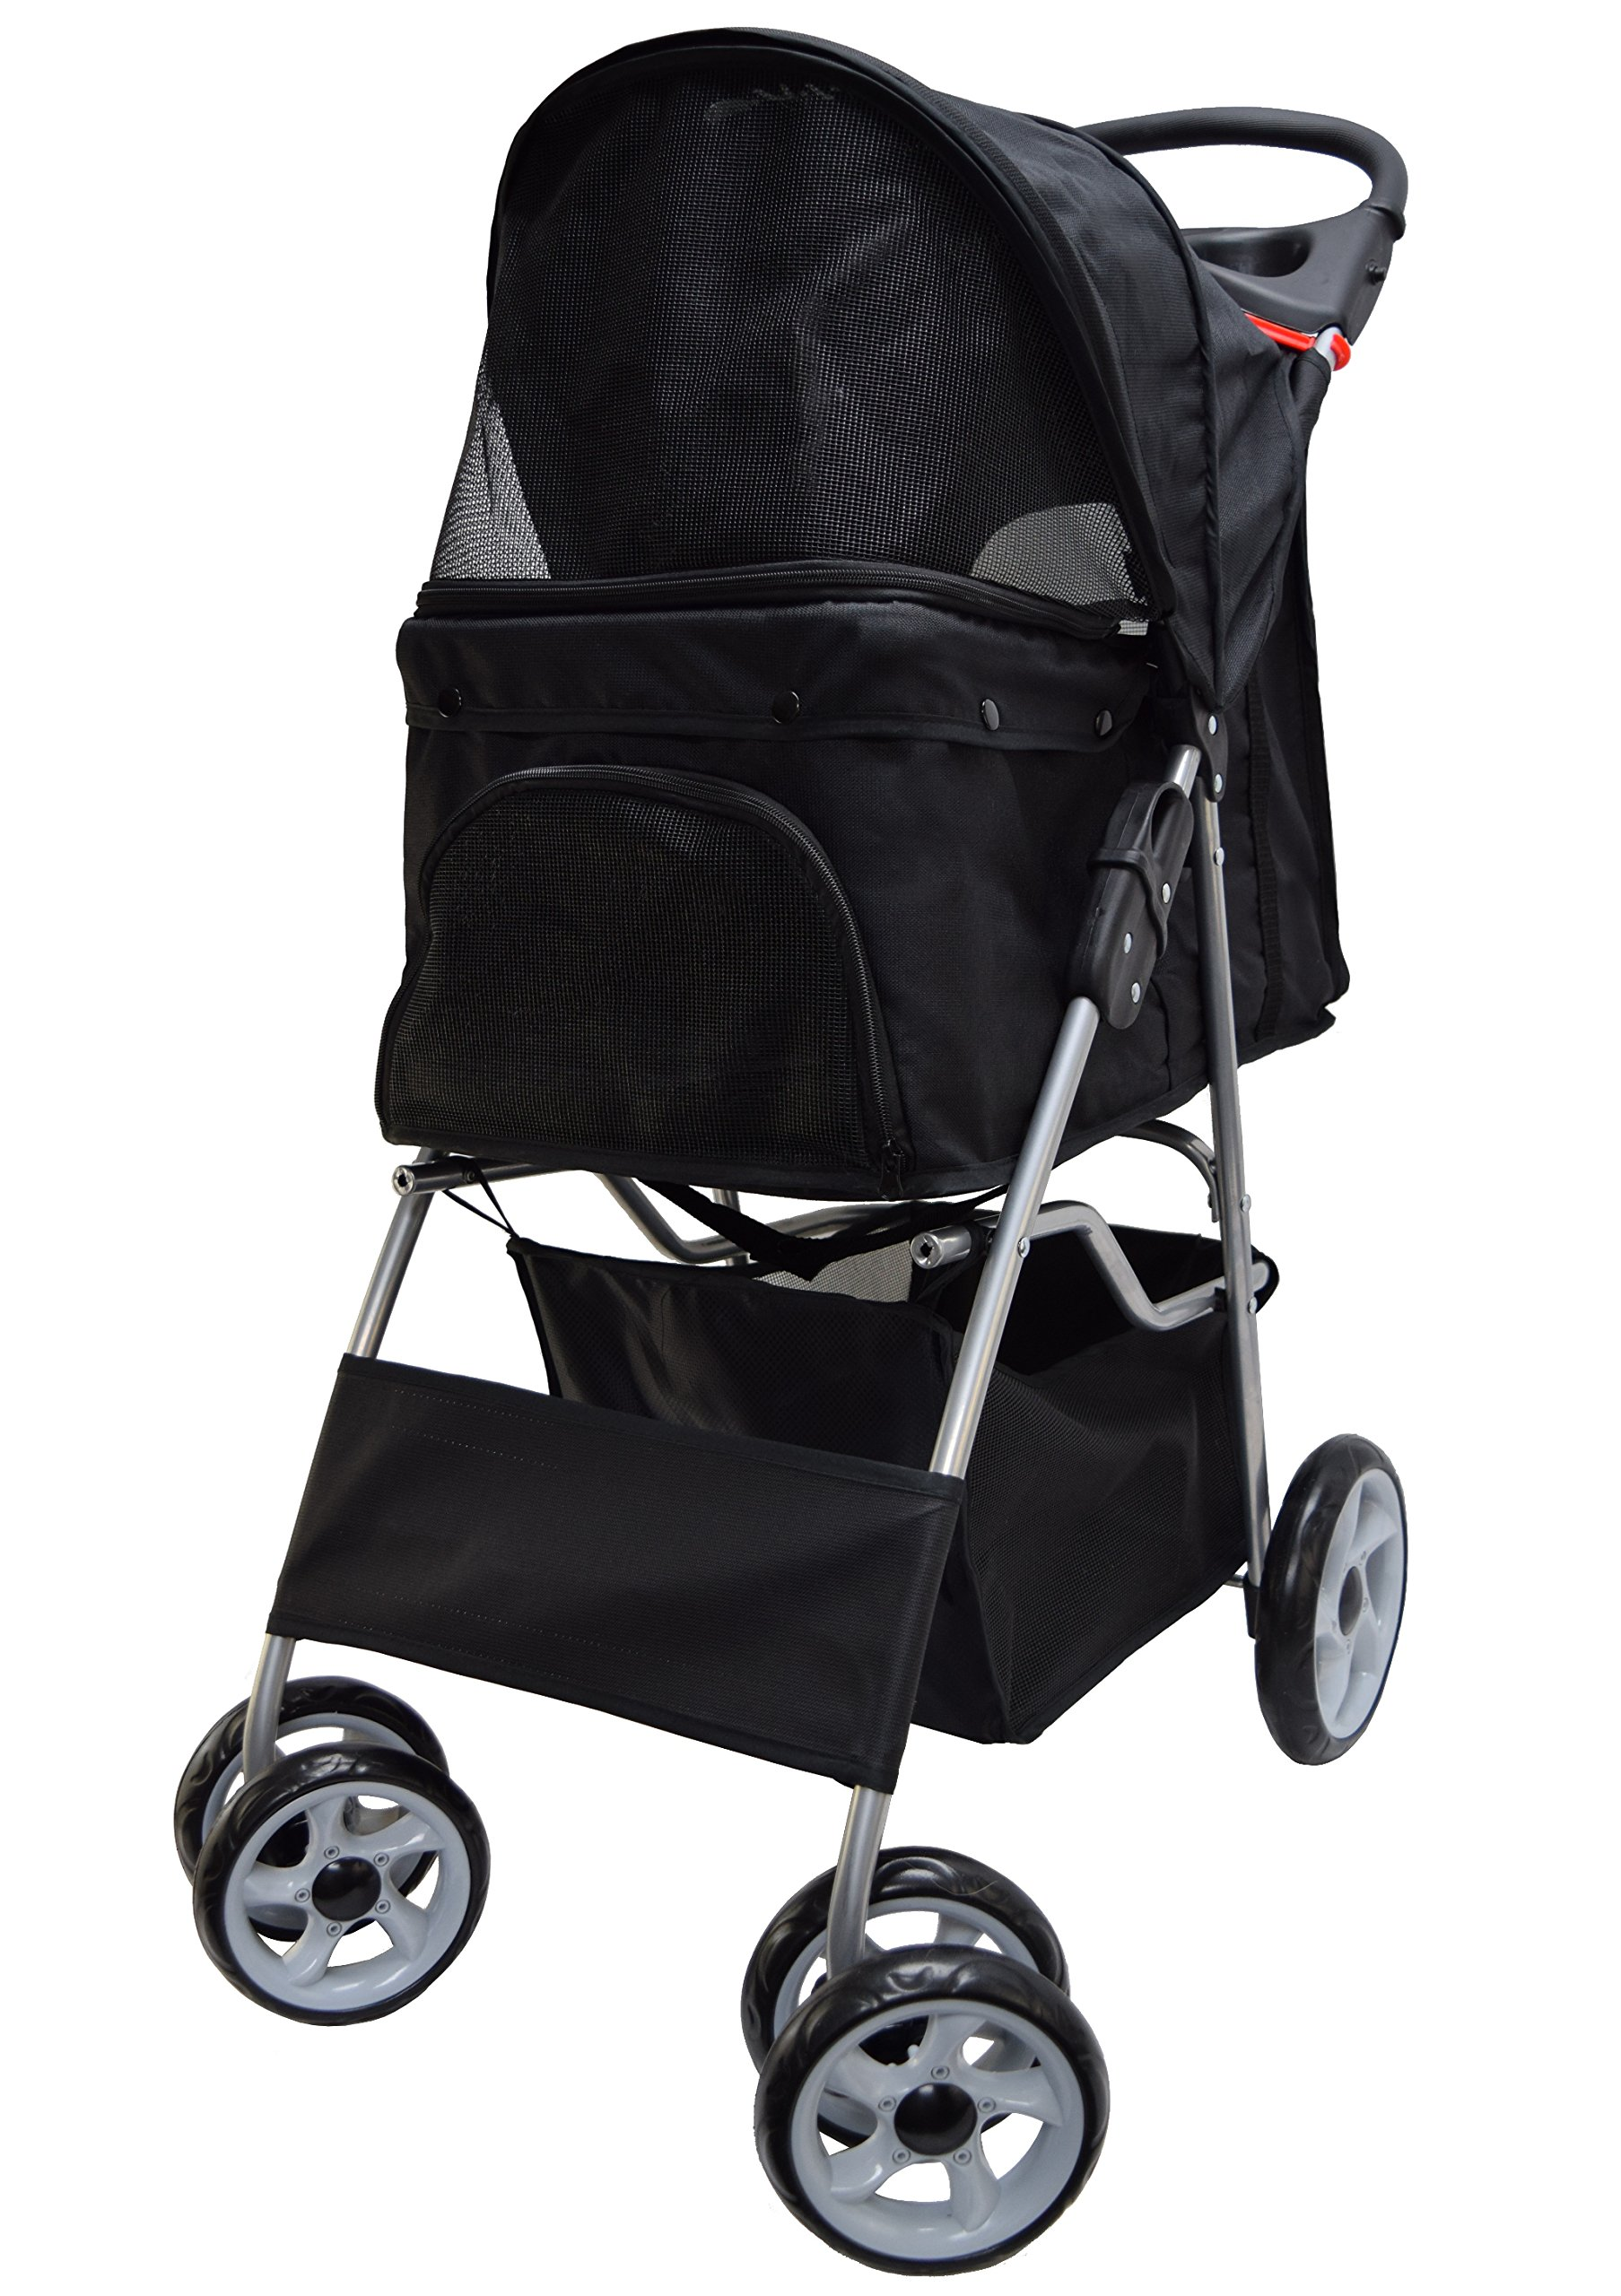 VIVO Black 4 Wheel Pet Stroller for Cat, Dog and More, Foldable Carrier Strolling Cart (STROLR-V001K) by VIVO